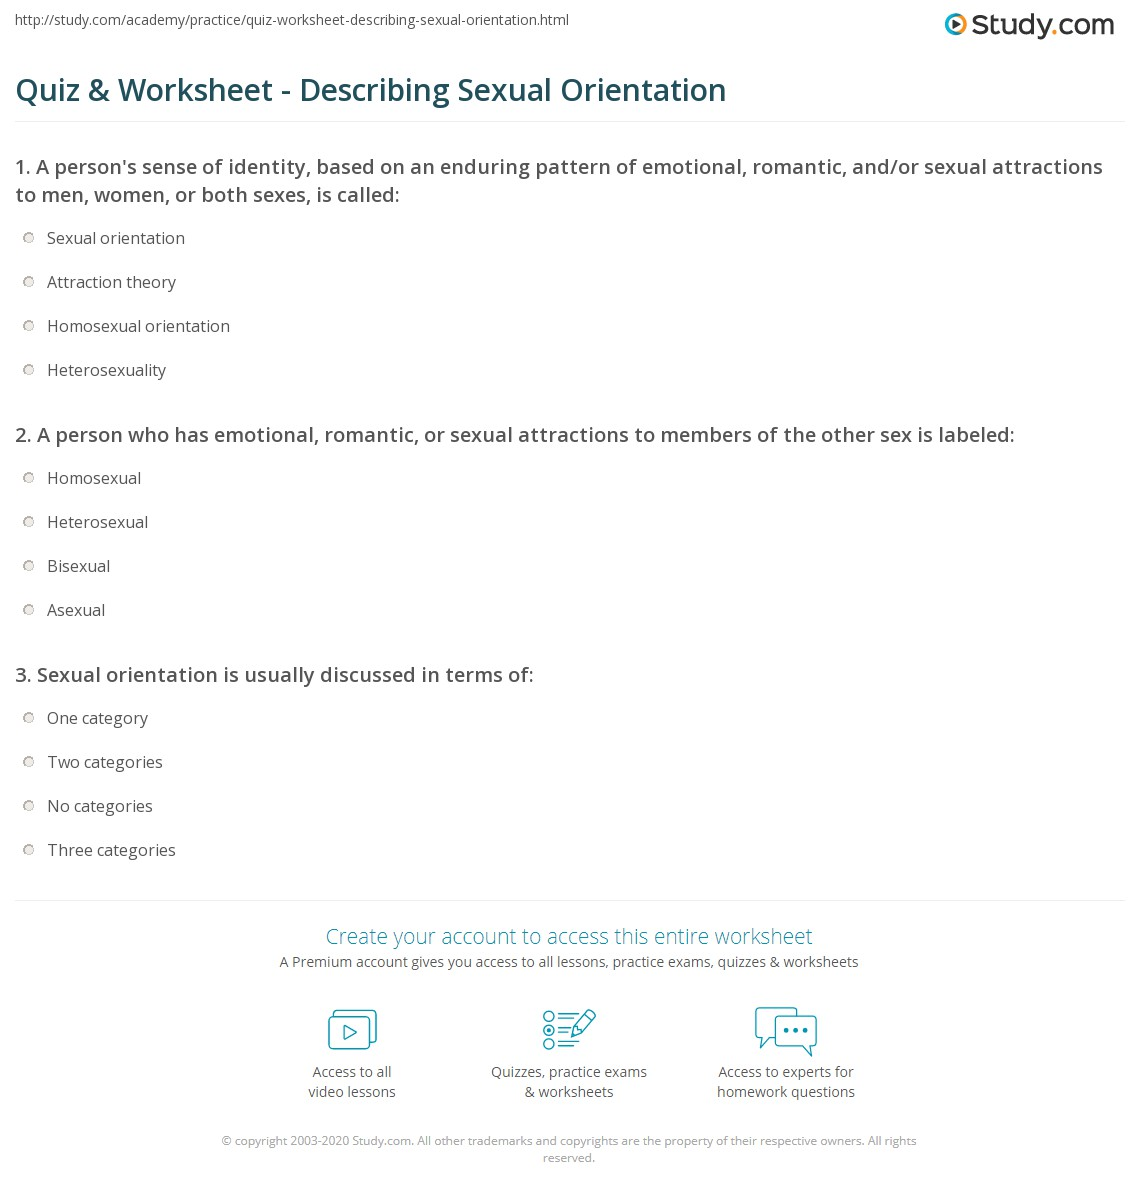 What is my sexuality orientation quiz